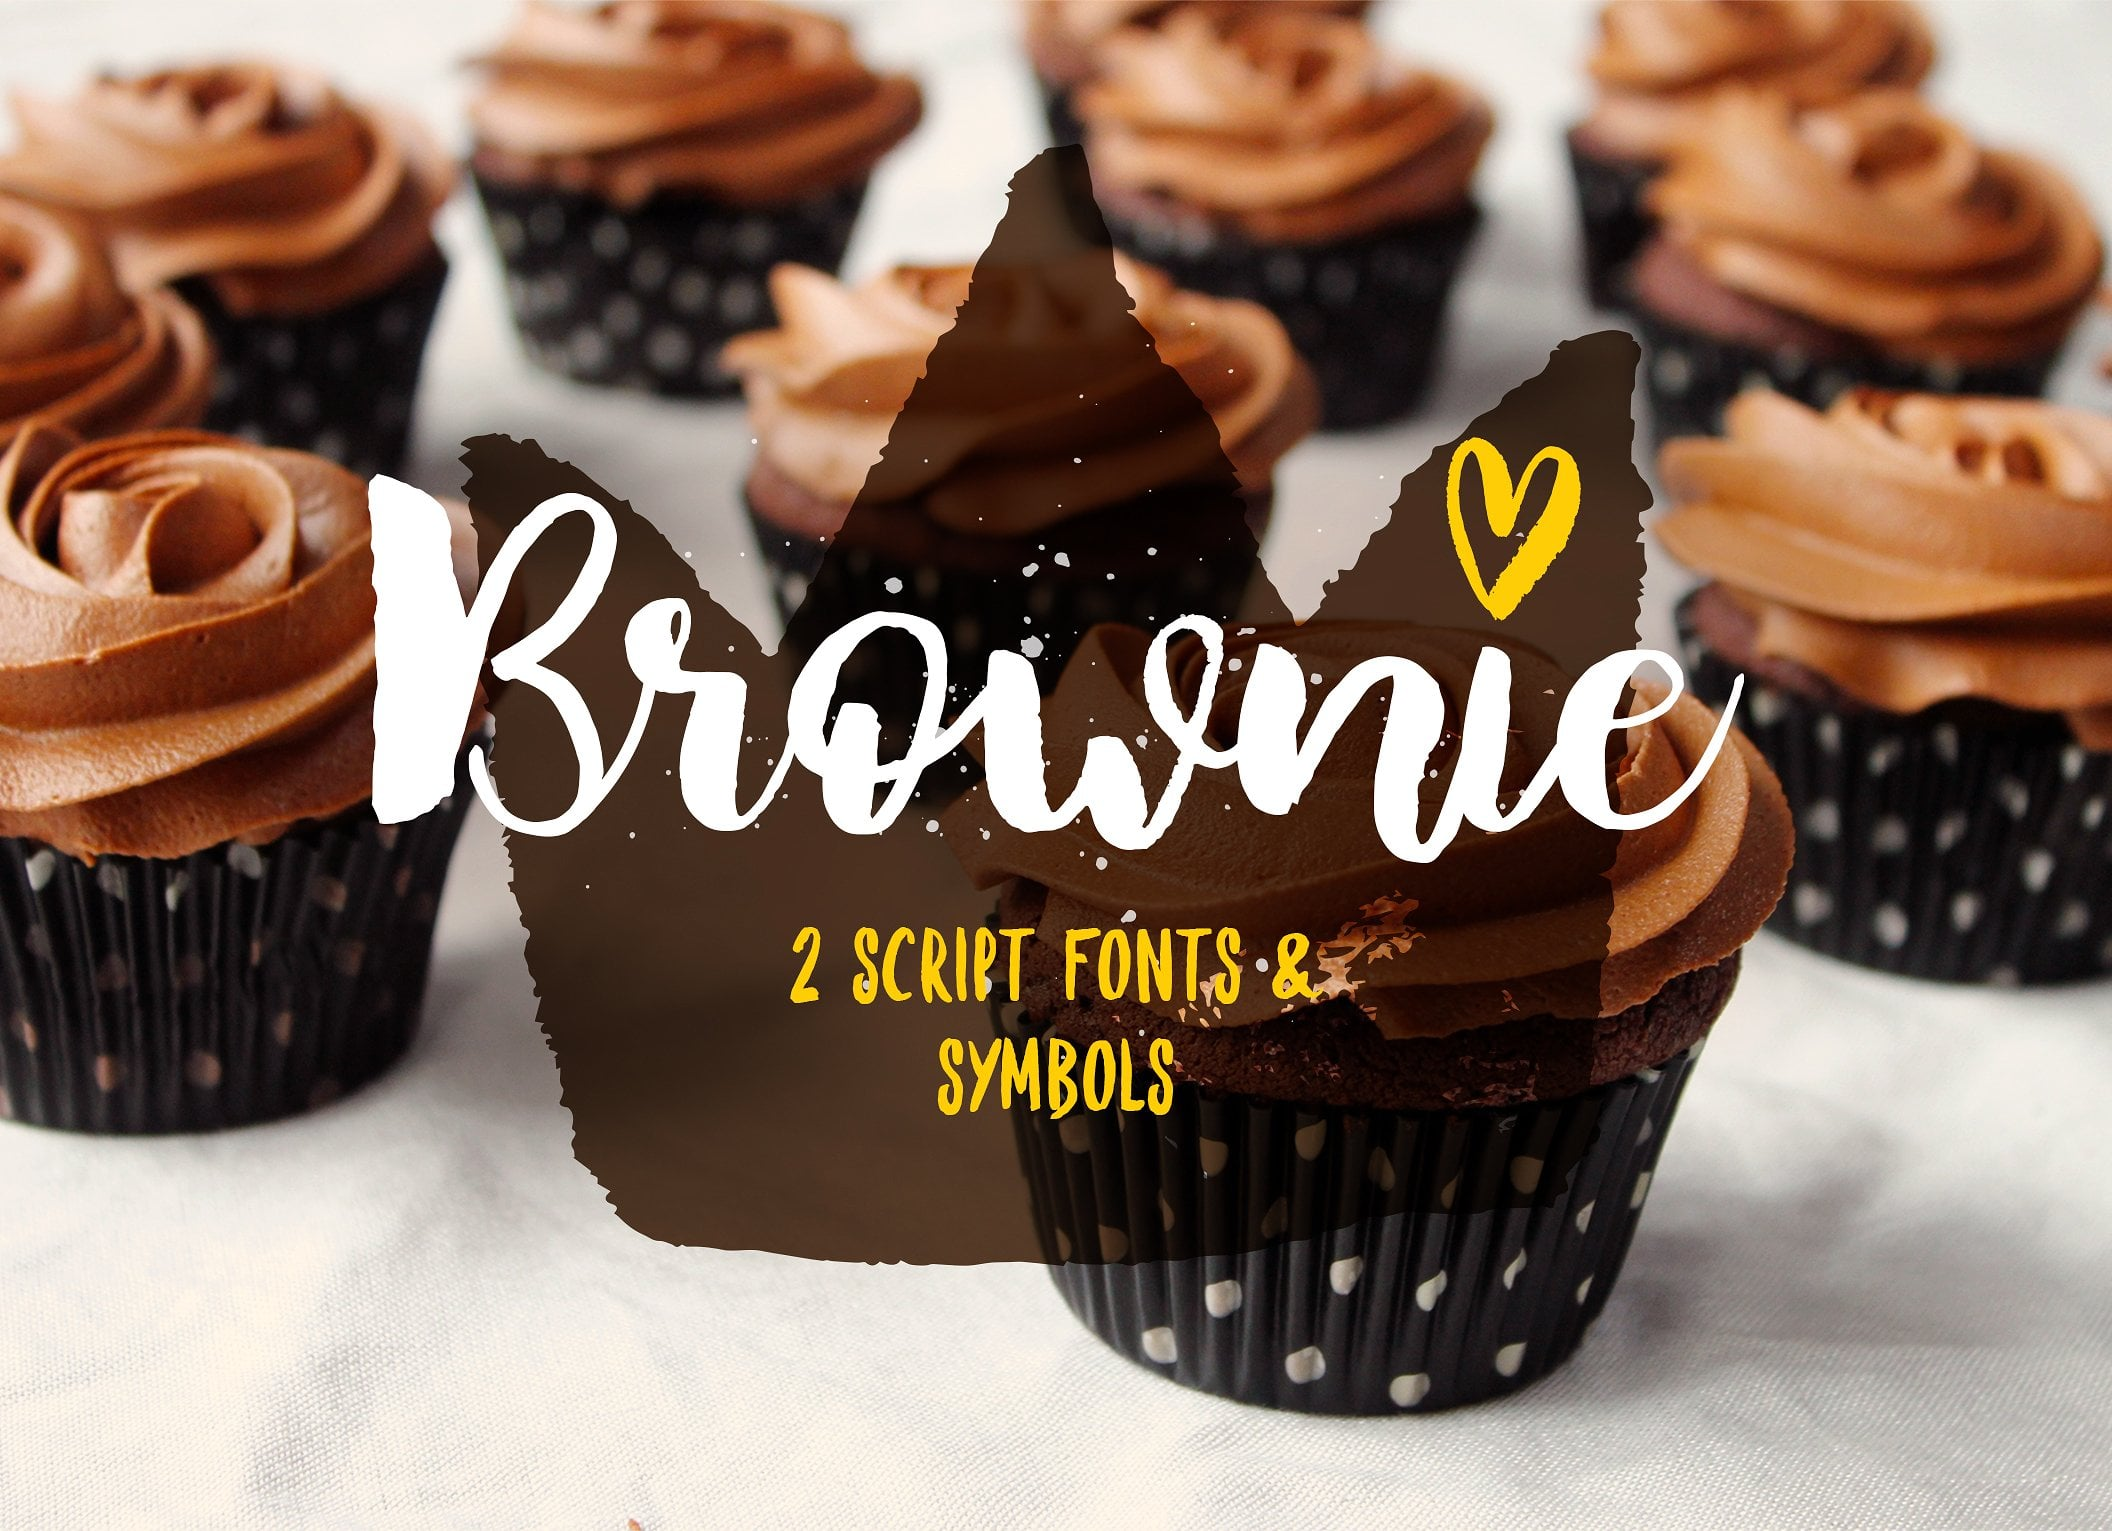 Web-safe Fonts - $14 for 14 Fonts Bundle - Best Deal - 01 7